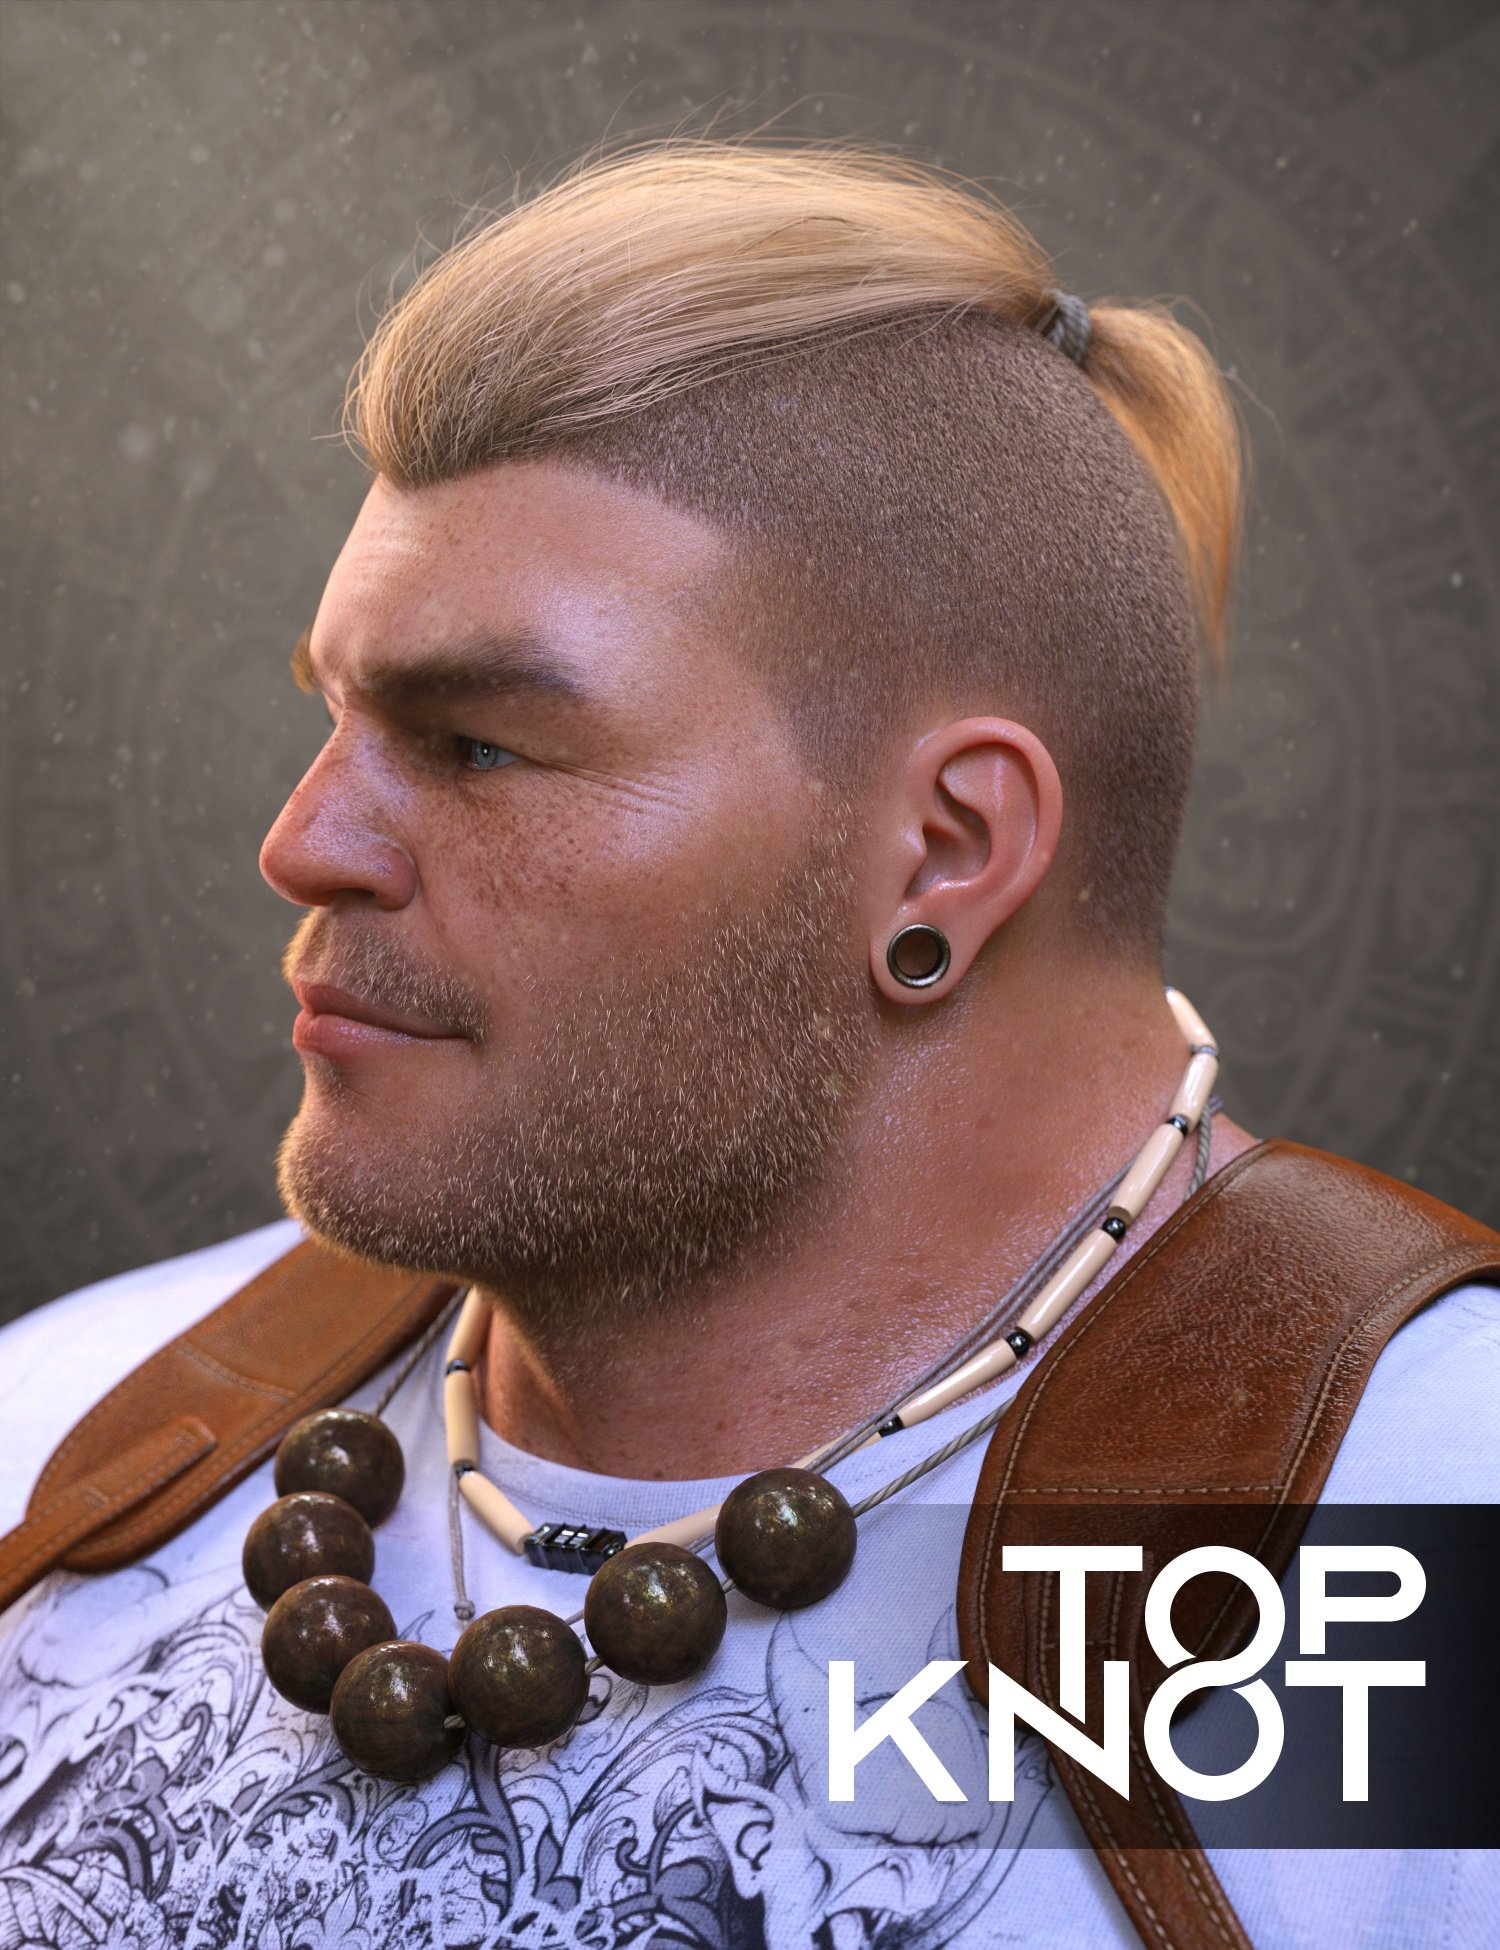 Top Knot Hair and Beard for Genesis 3 and 8 by: Soto, 3D Models by Daz 3D